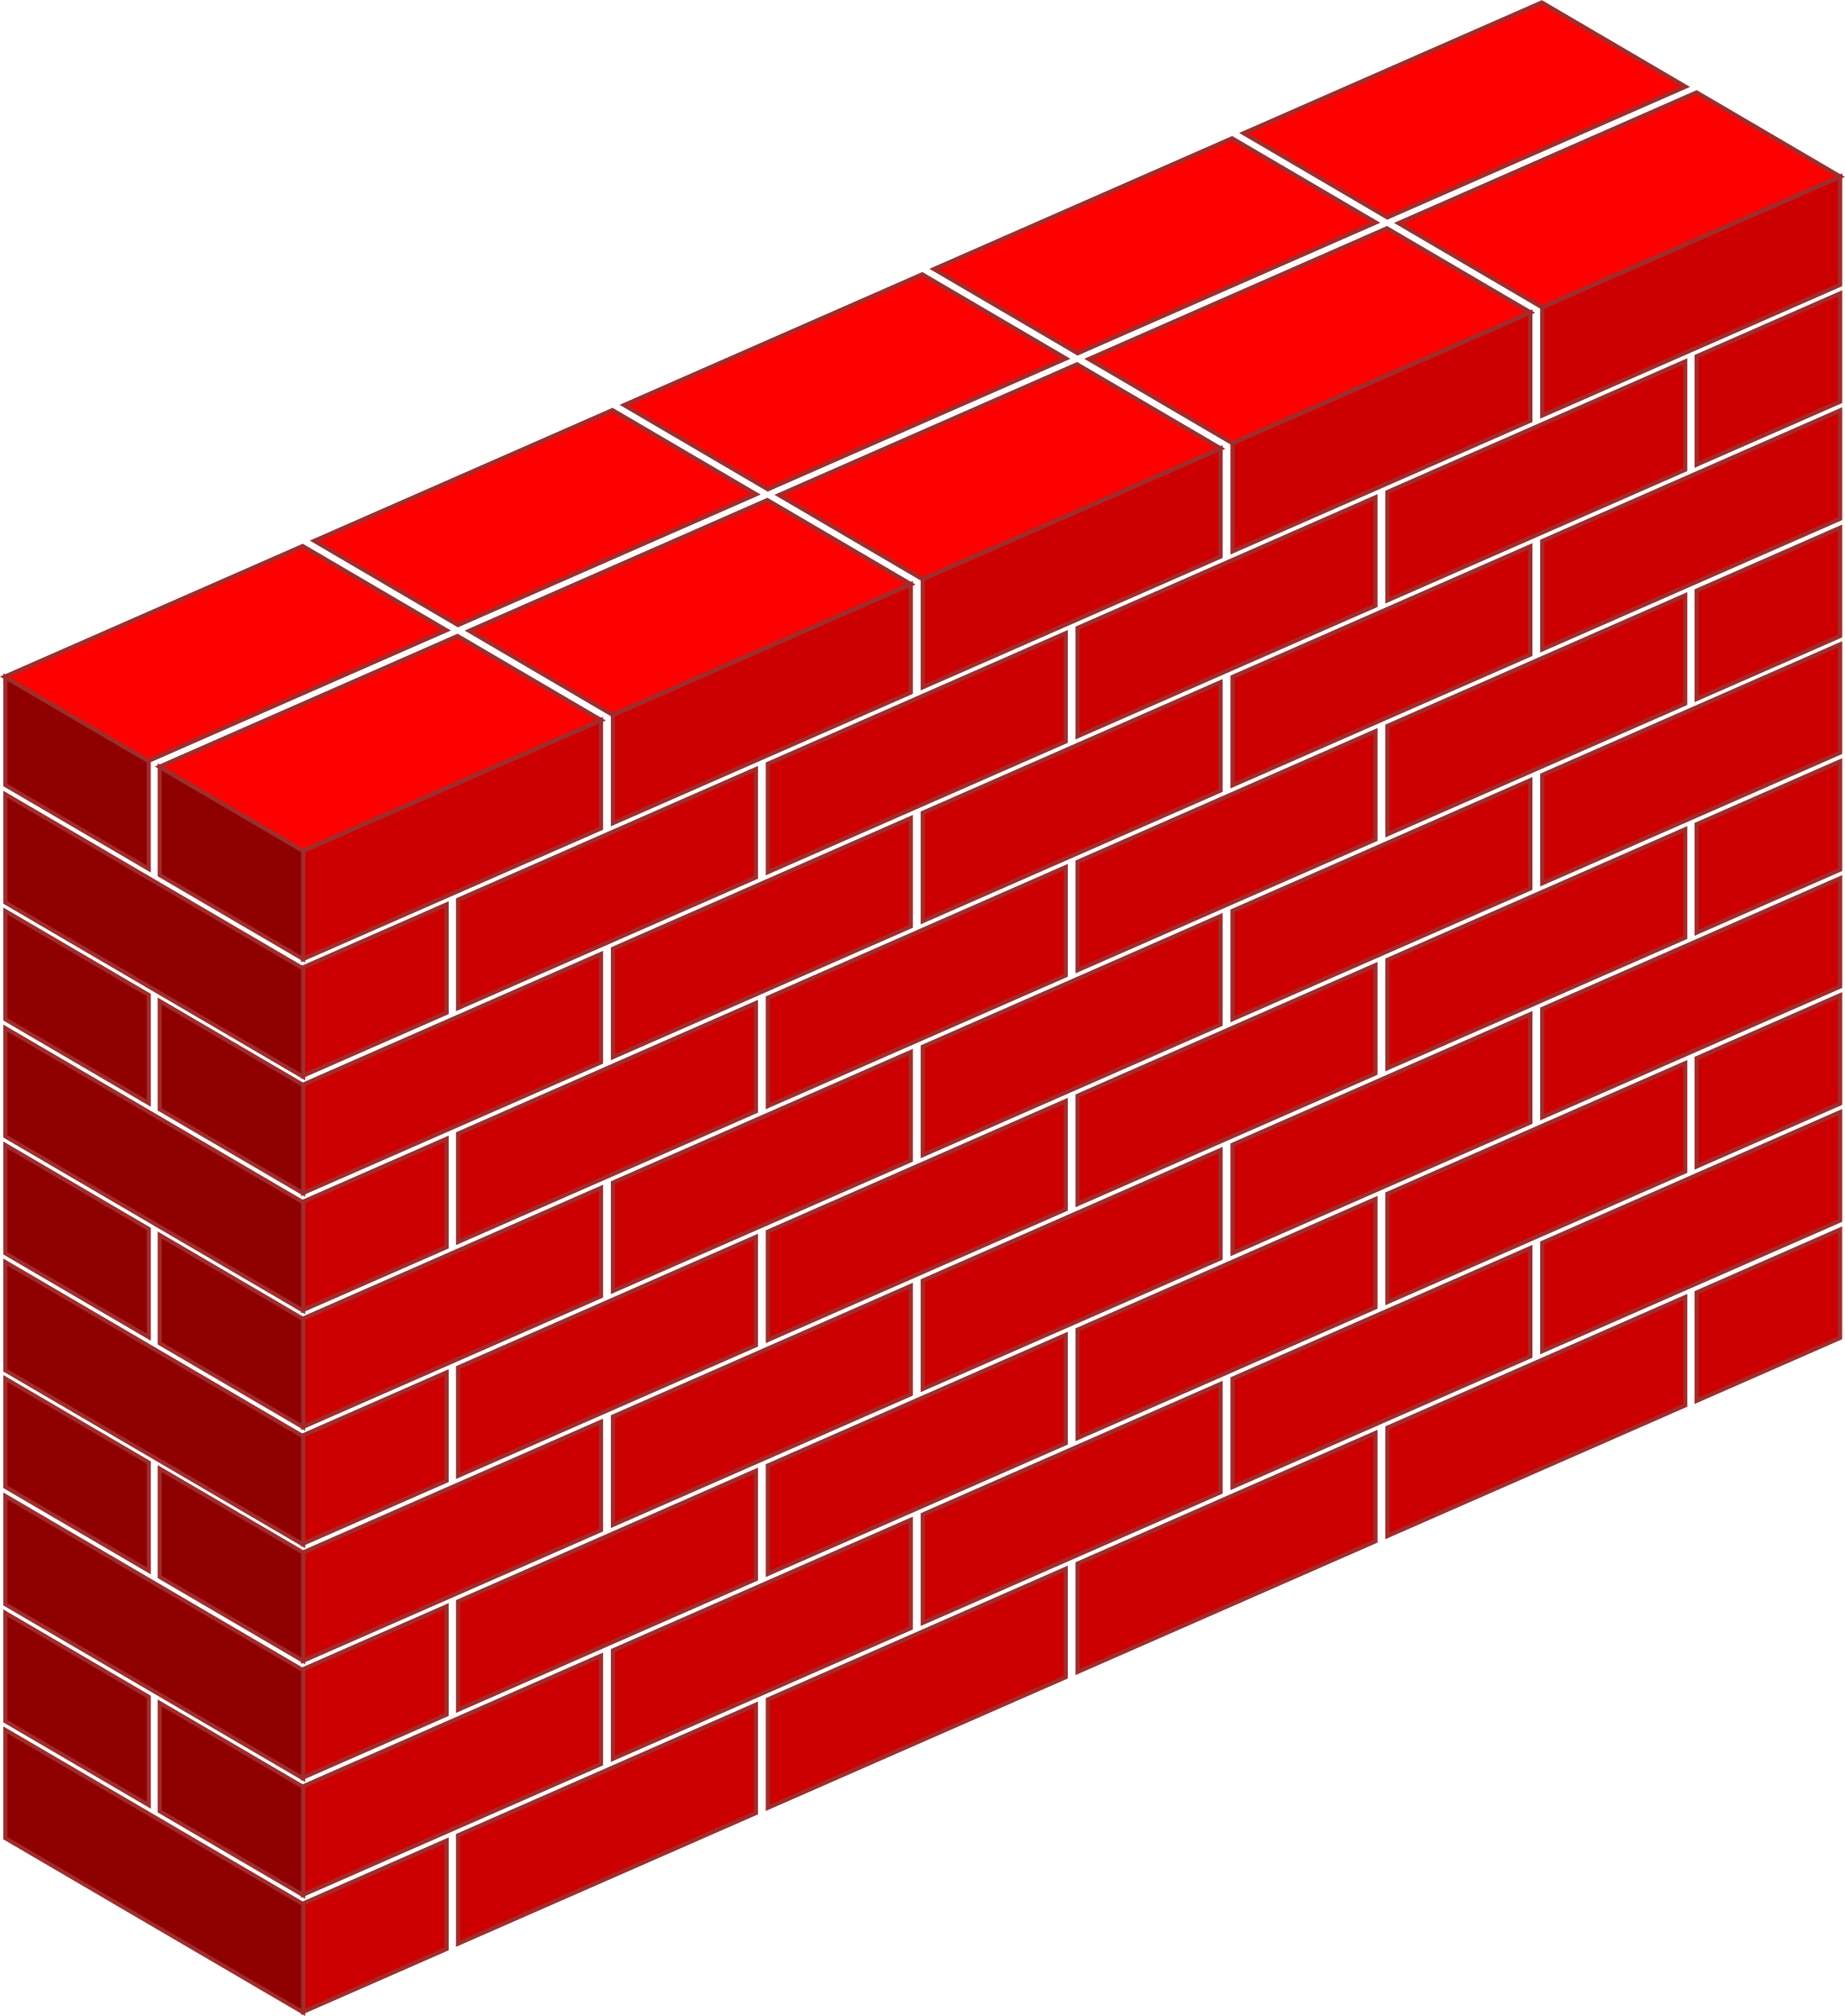 red brick wall vector clipart image free stock photo public